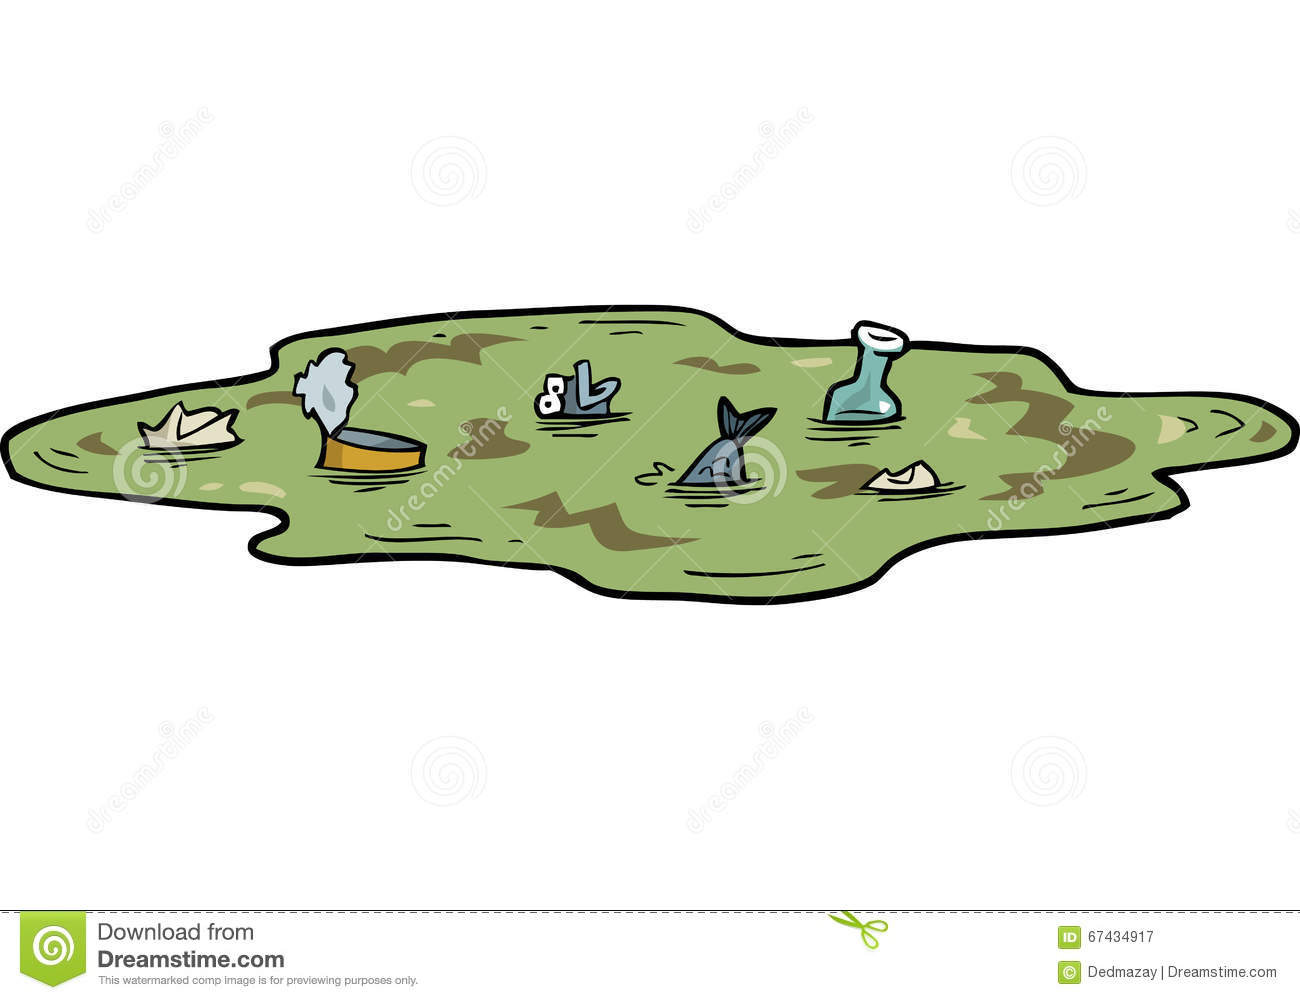 Polluted river clipart jpg black and white Polluted River Stock Illustrations – 81 Polluted River Stock ... jpg black and white